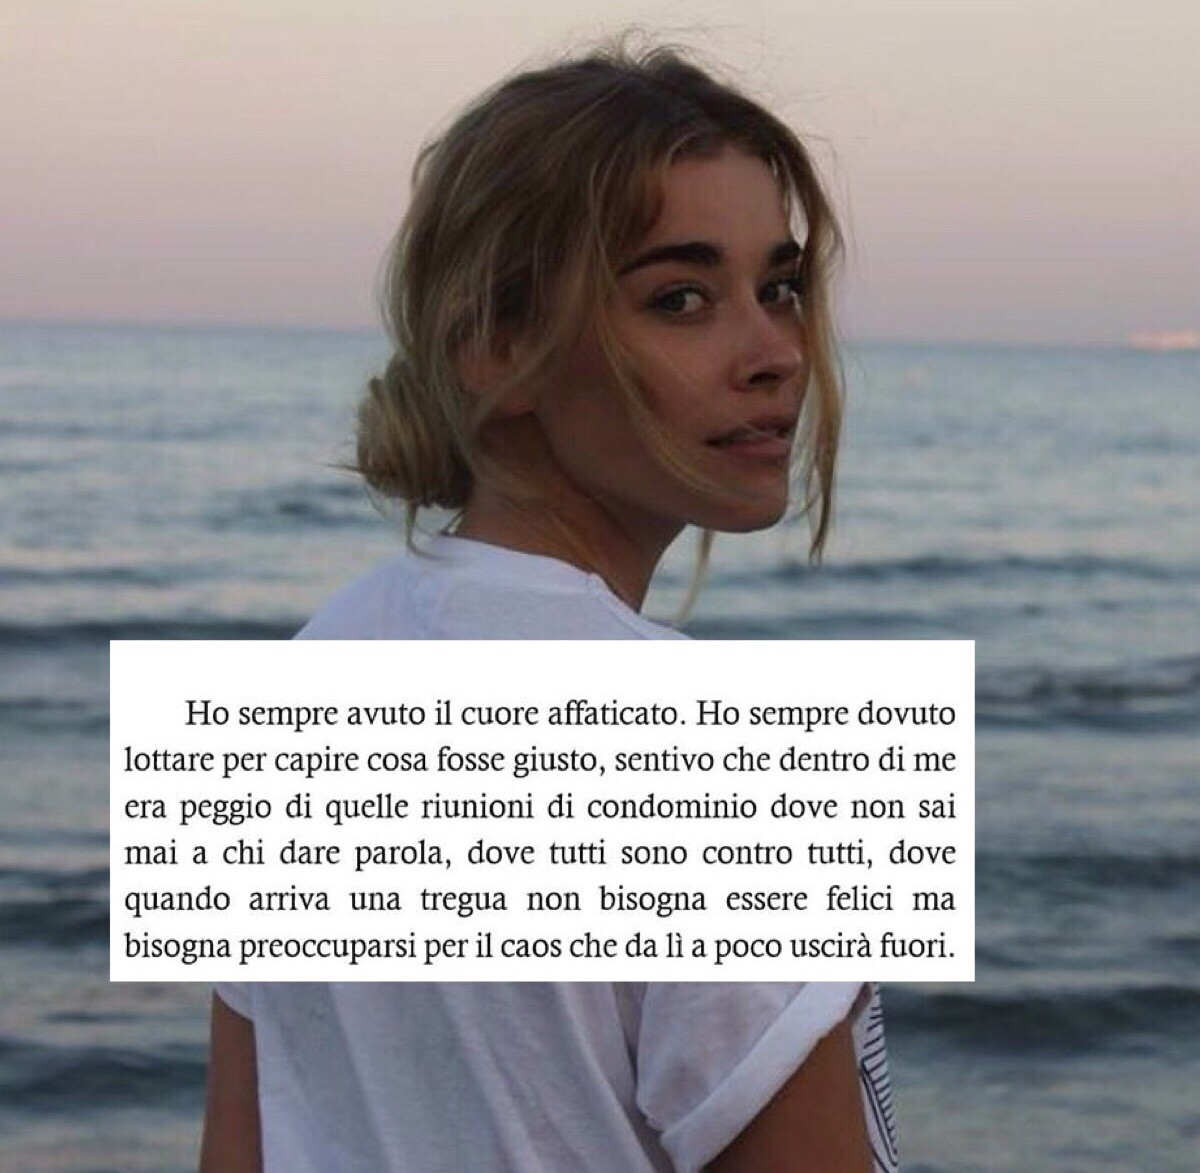 Frasi Bellissime We Heart It.1000 Images About Frasi Belle On We Heart It See More About Frasi Frasi Italiane And Tumblr